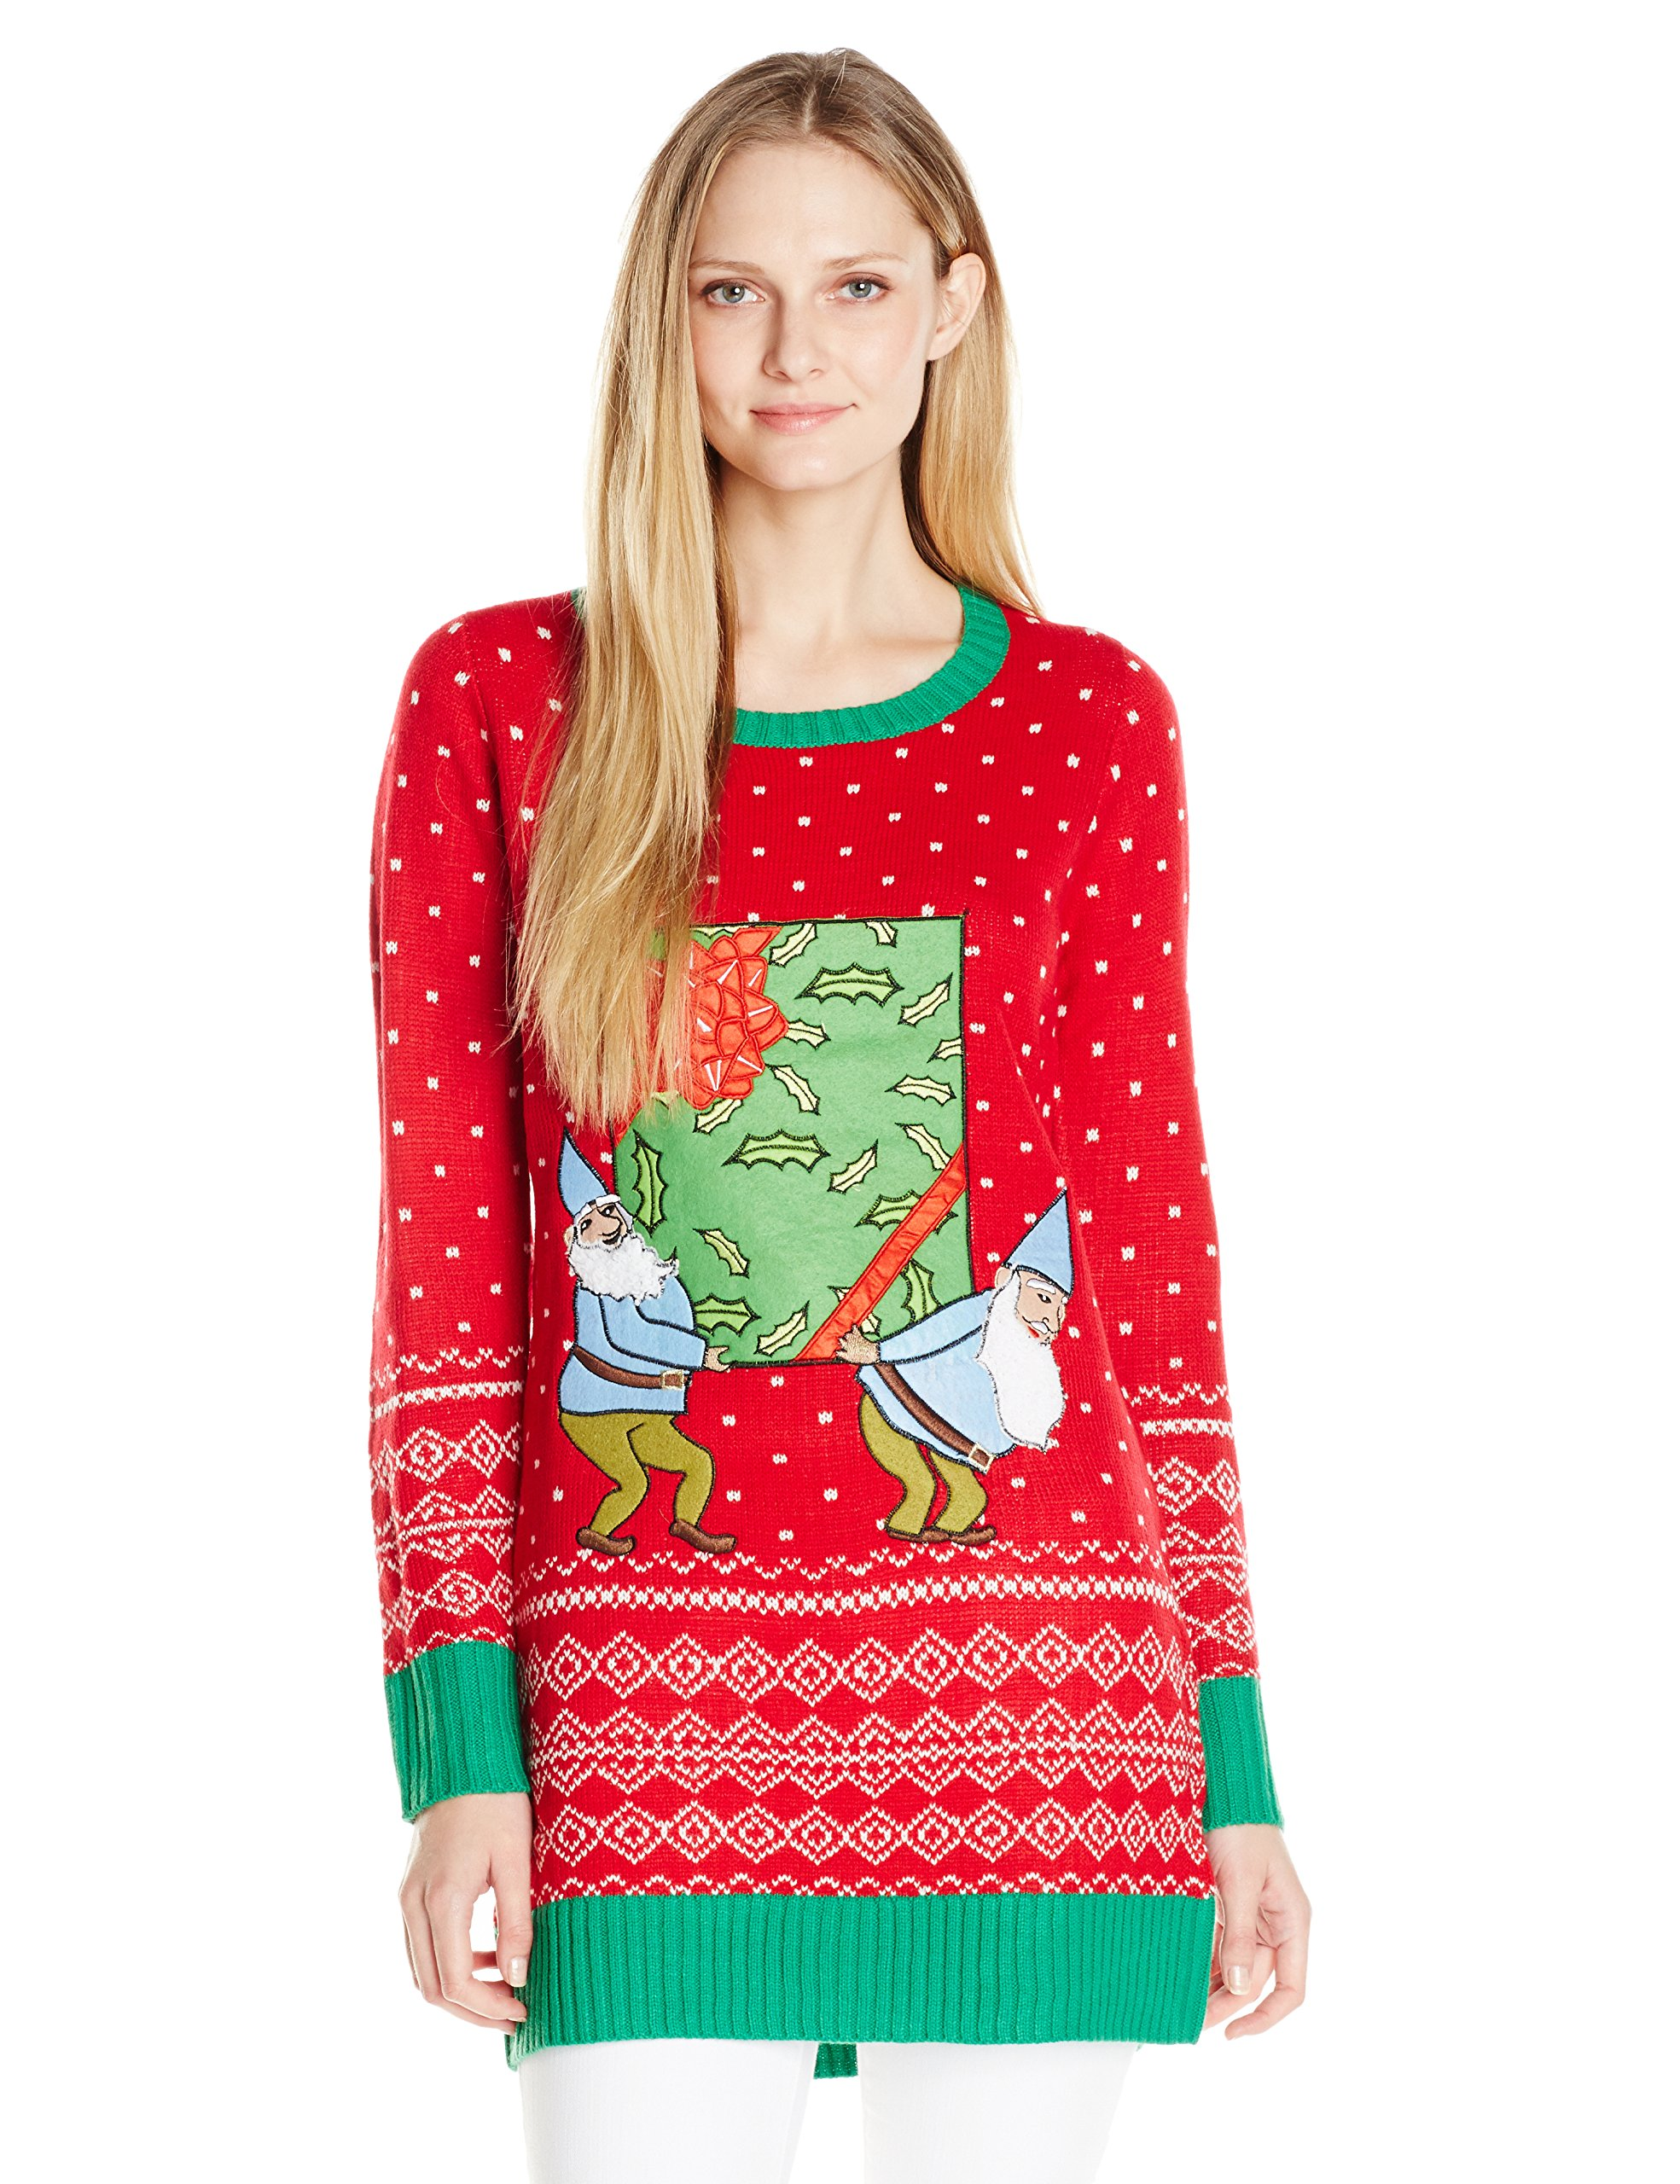 Blizzard Bay Women's Elves Holding A Present with A 3D Pocket Tunic Ugly Chritstmas Sweater, Red, S